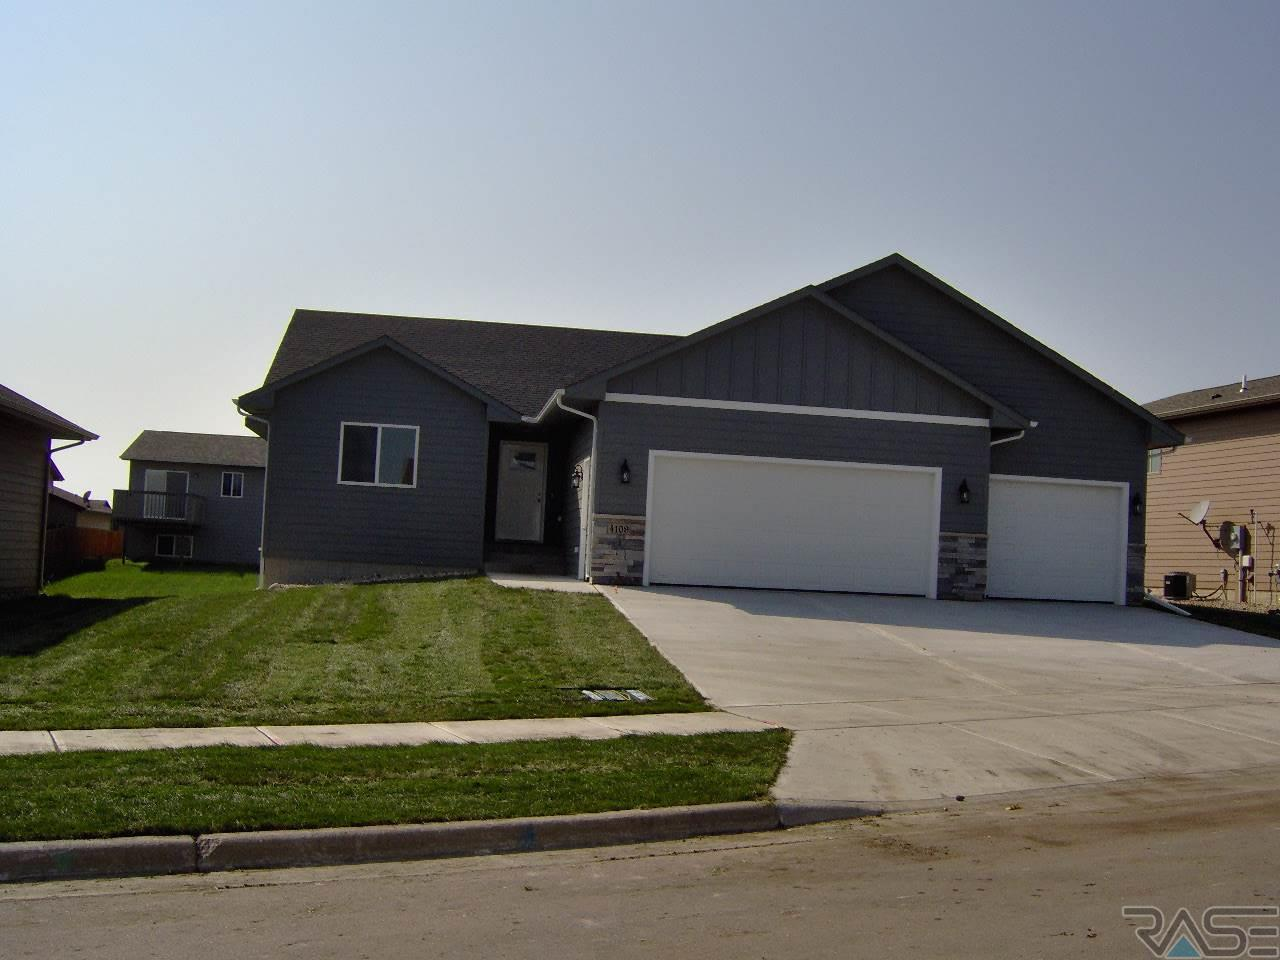 4109 S Outfield Ave, Sioux Falls, SD 57110